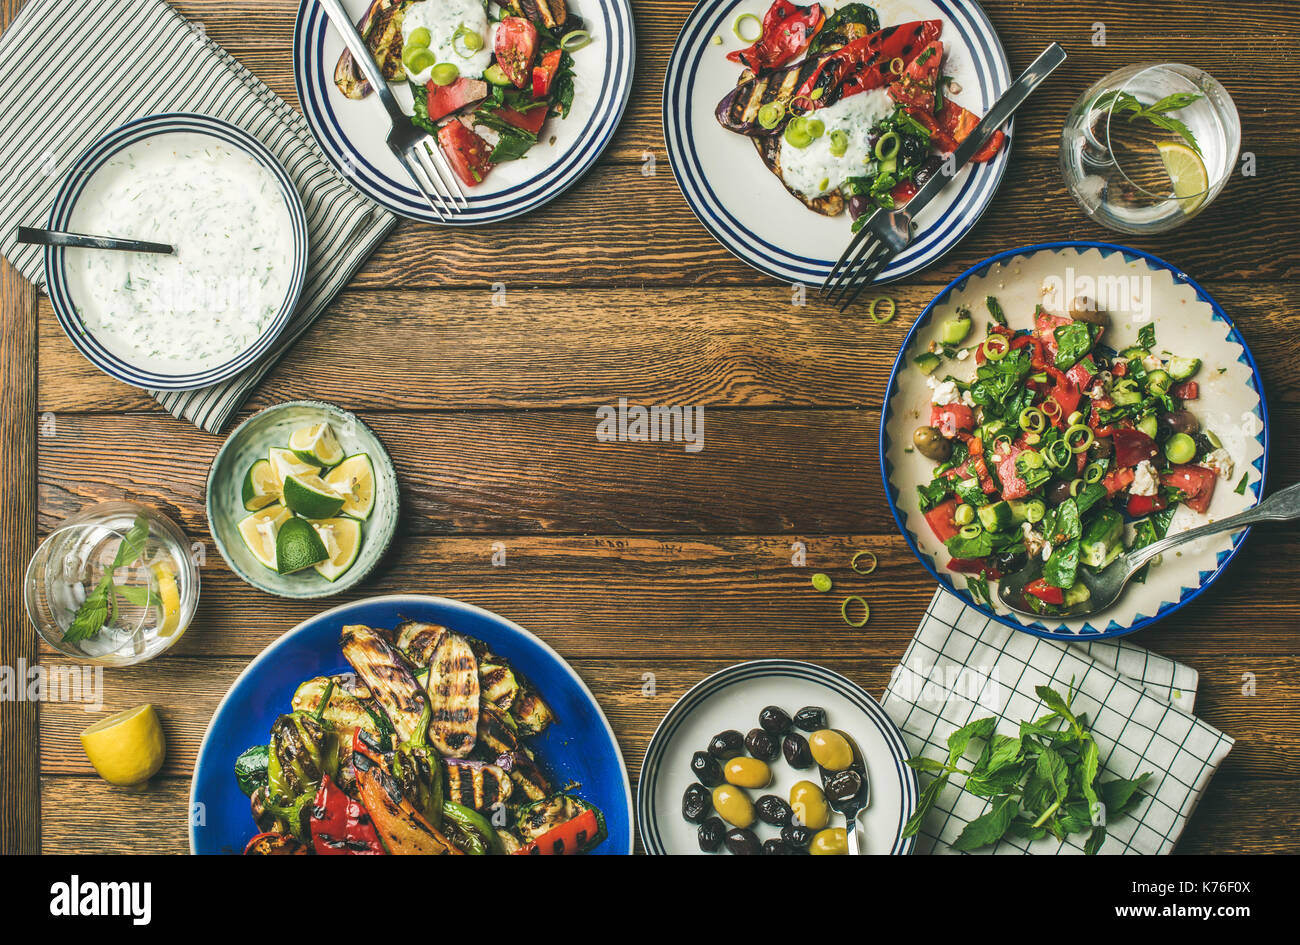 Flat-lay of healthy vegetarian dinner table setting Stock Photo